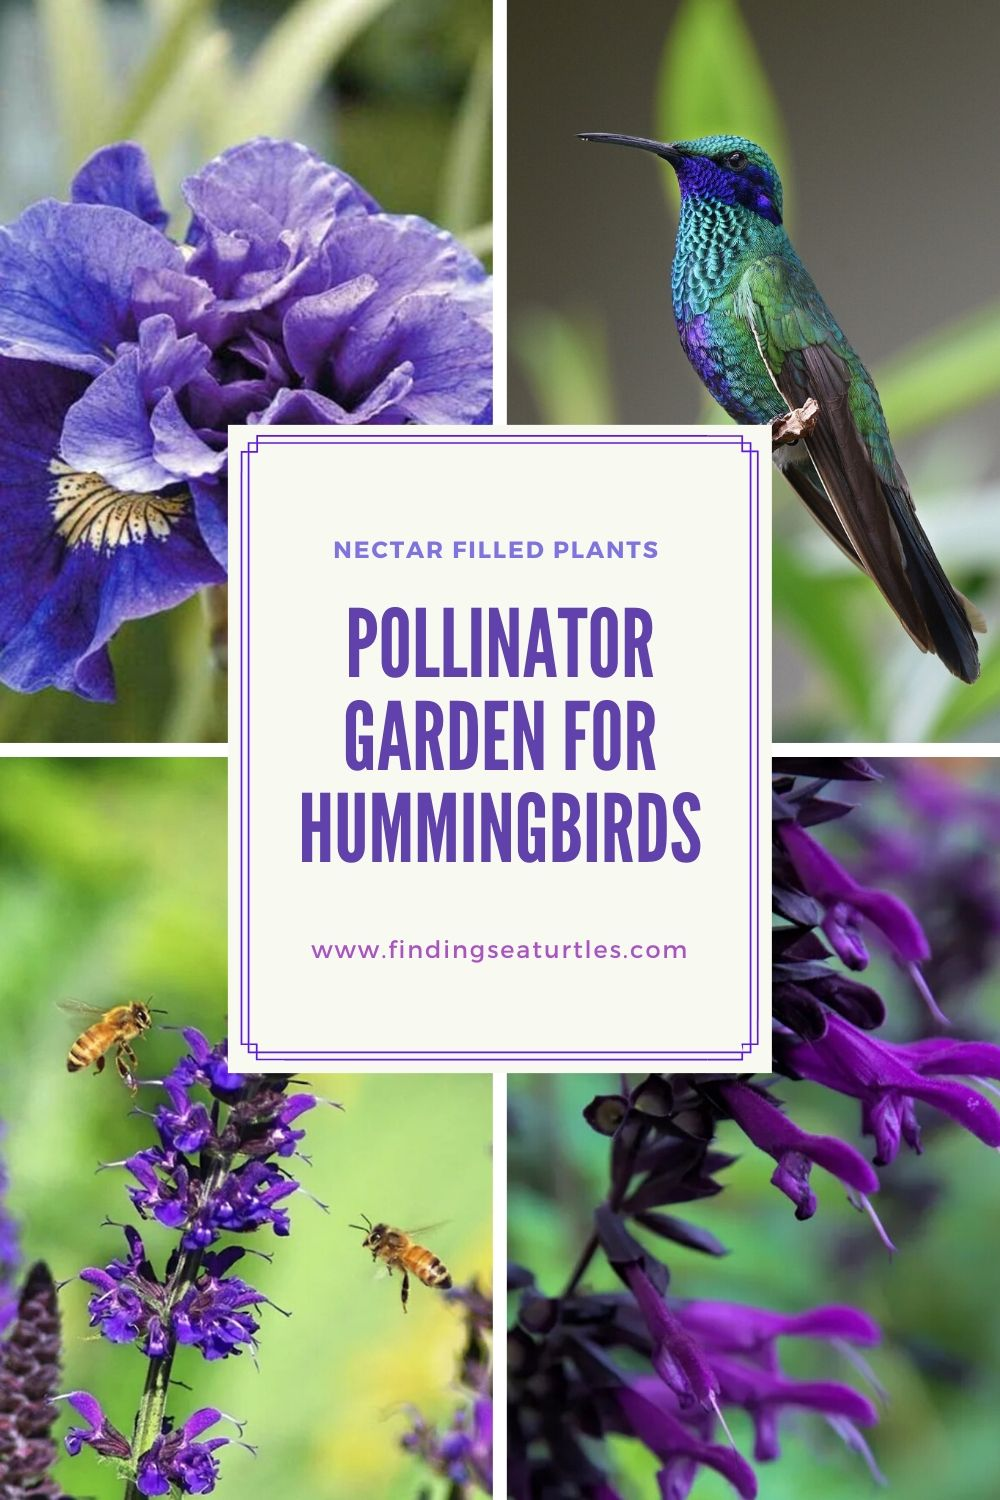 Nectar Filled Plants Pollinator Garden for Hummingbirds #Hummingbirds #Garden #Gardening #Plants #GardenPollinators #AttractHummingbirds #NectarRichPlants #BeneficialForPollinators